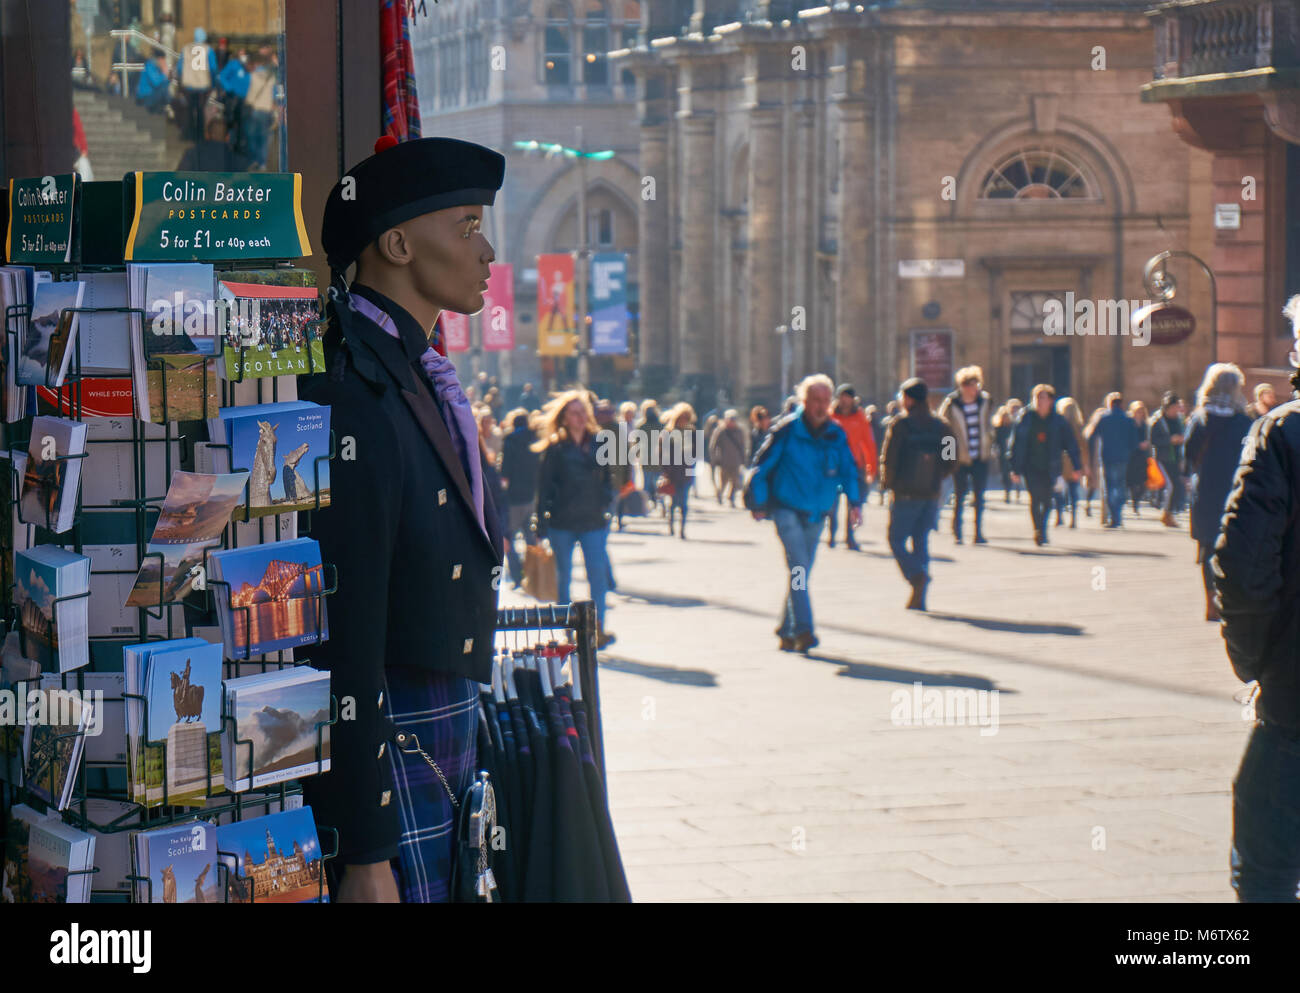 A  rack with postcards and a mannequin dressed in traditional Scottish kilt outside a souvenirs shop in Glasgow, - Stock Image